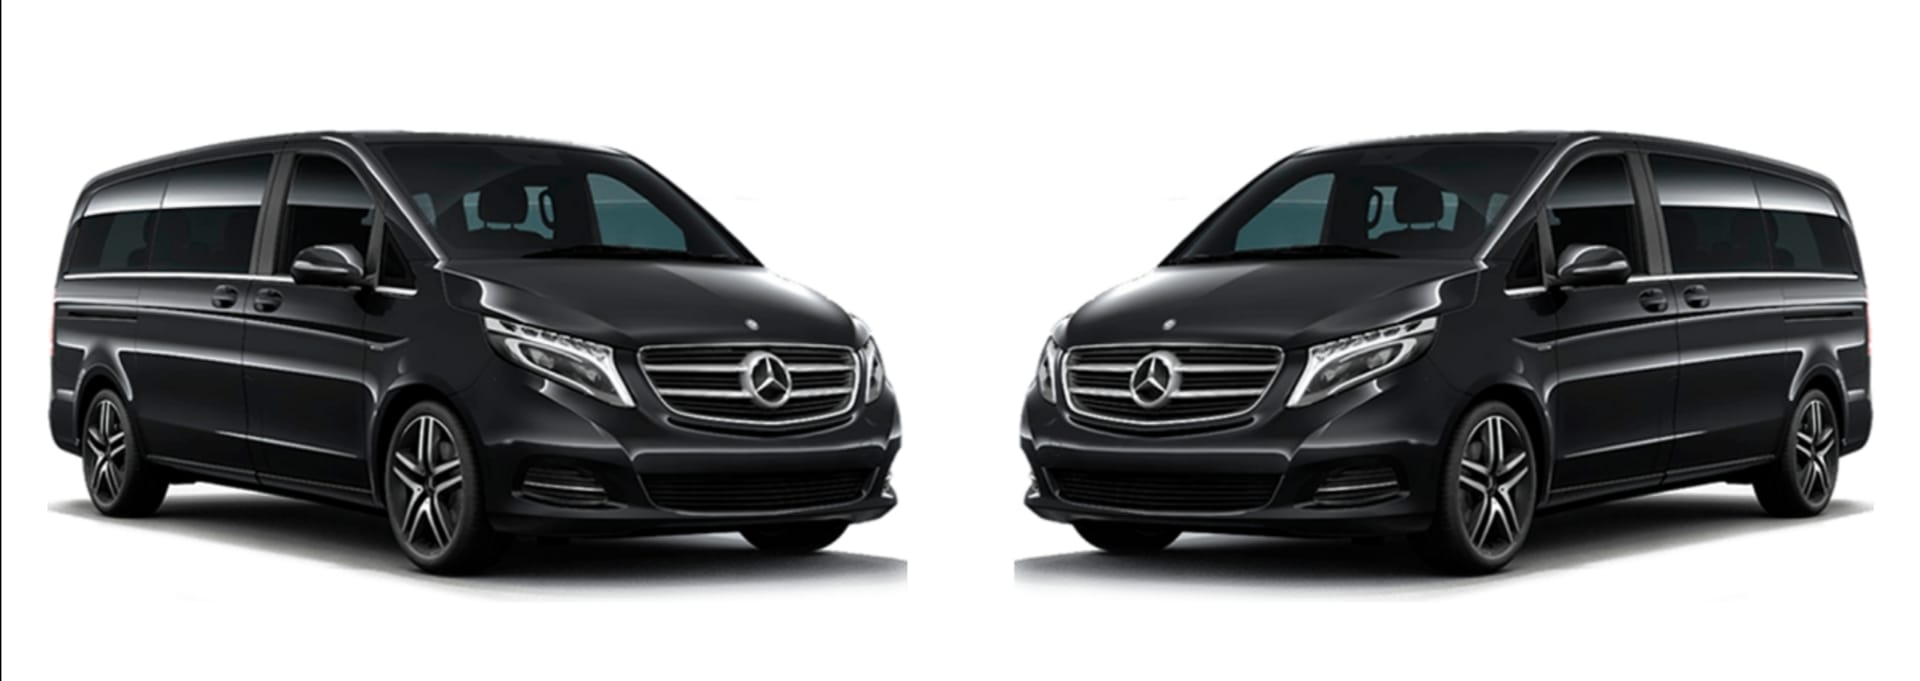 traserbas cars and vans for basel airport transfer services